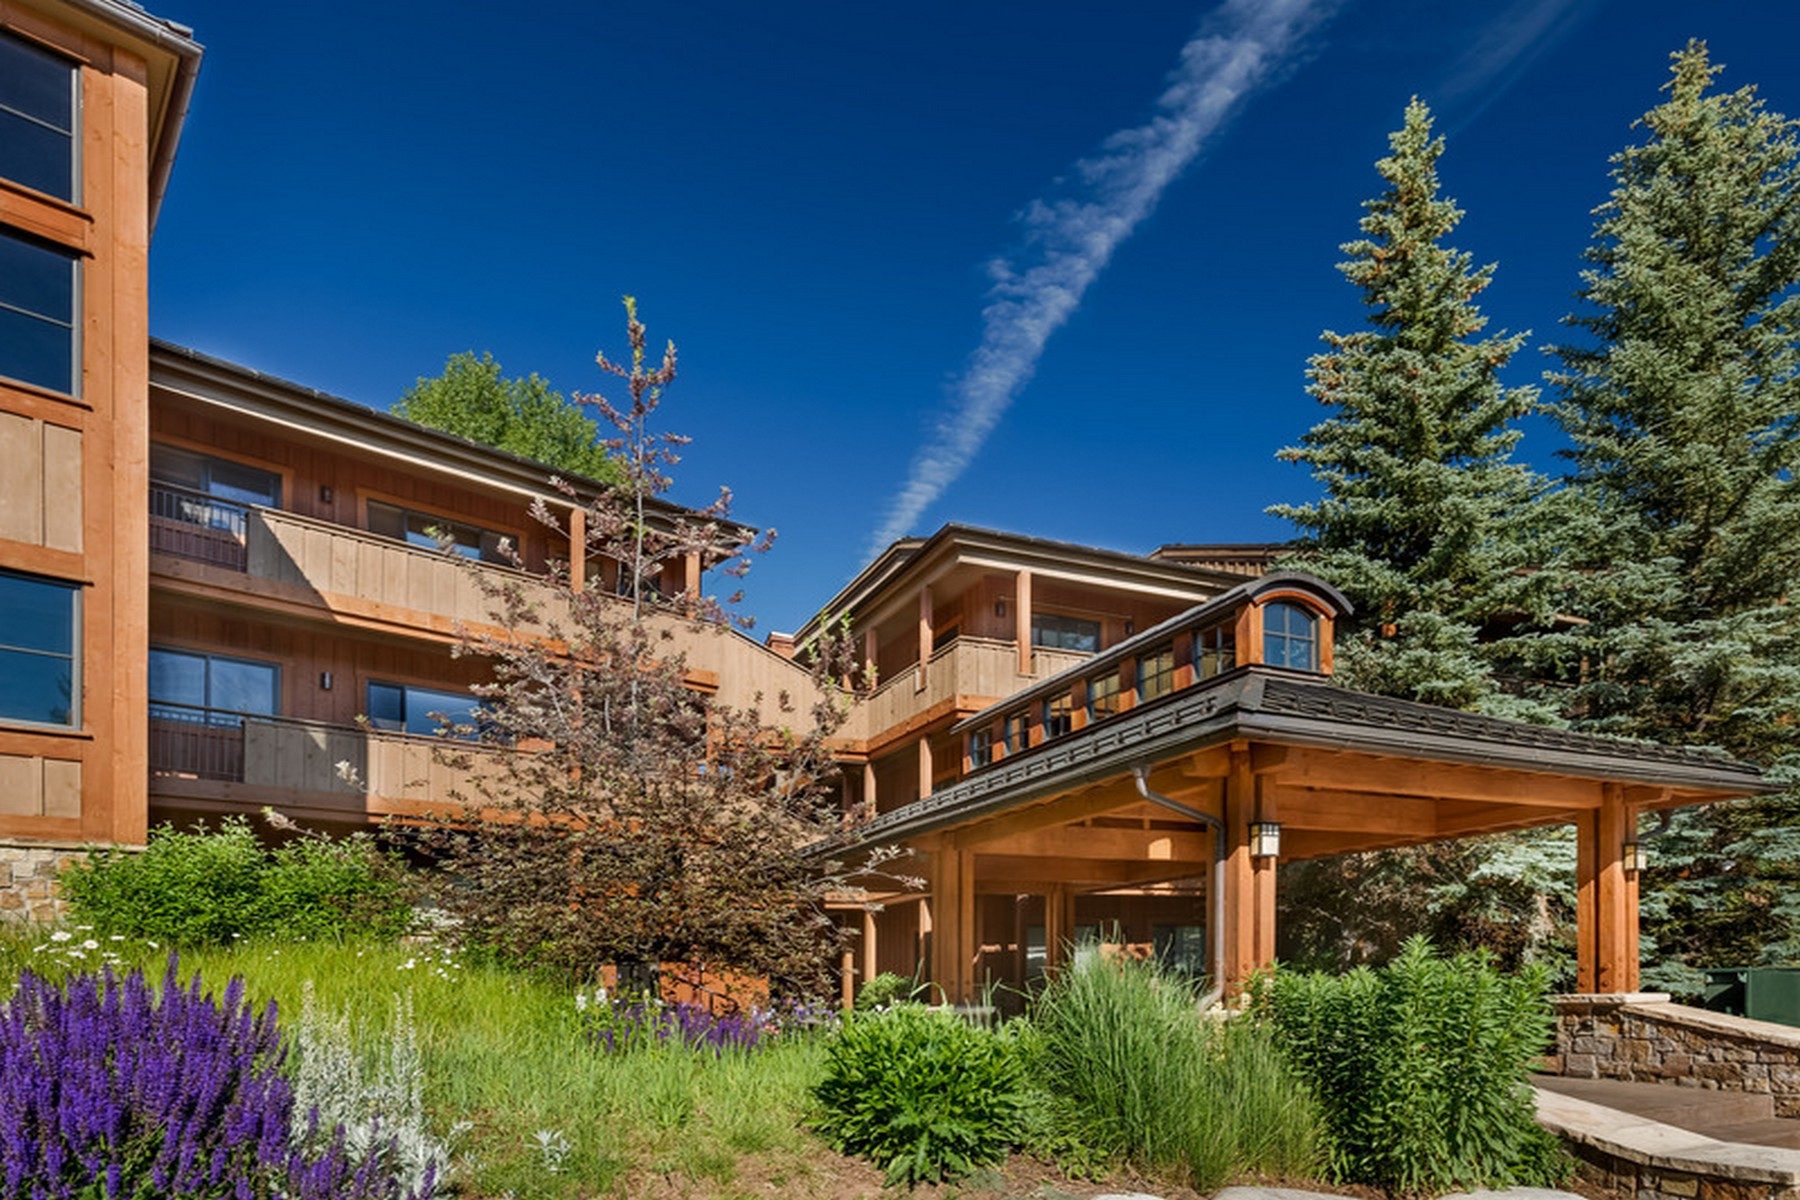 Condominium for Sale at Country Club Villa 1622 150 Snowmass Club Circle 1622 Snowmass Village, Colorado, 81615 United States